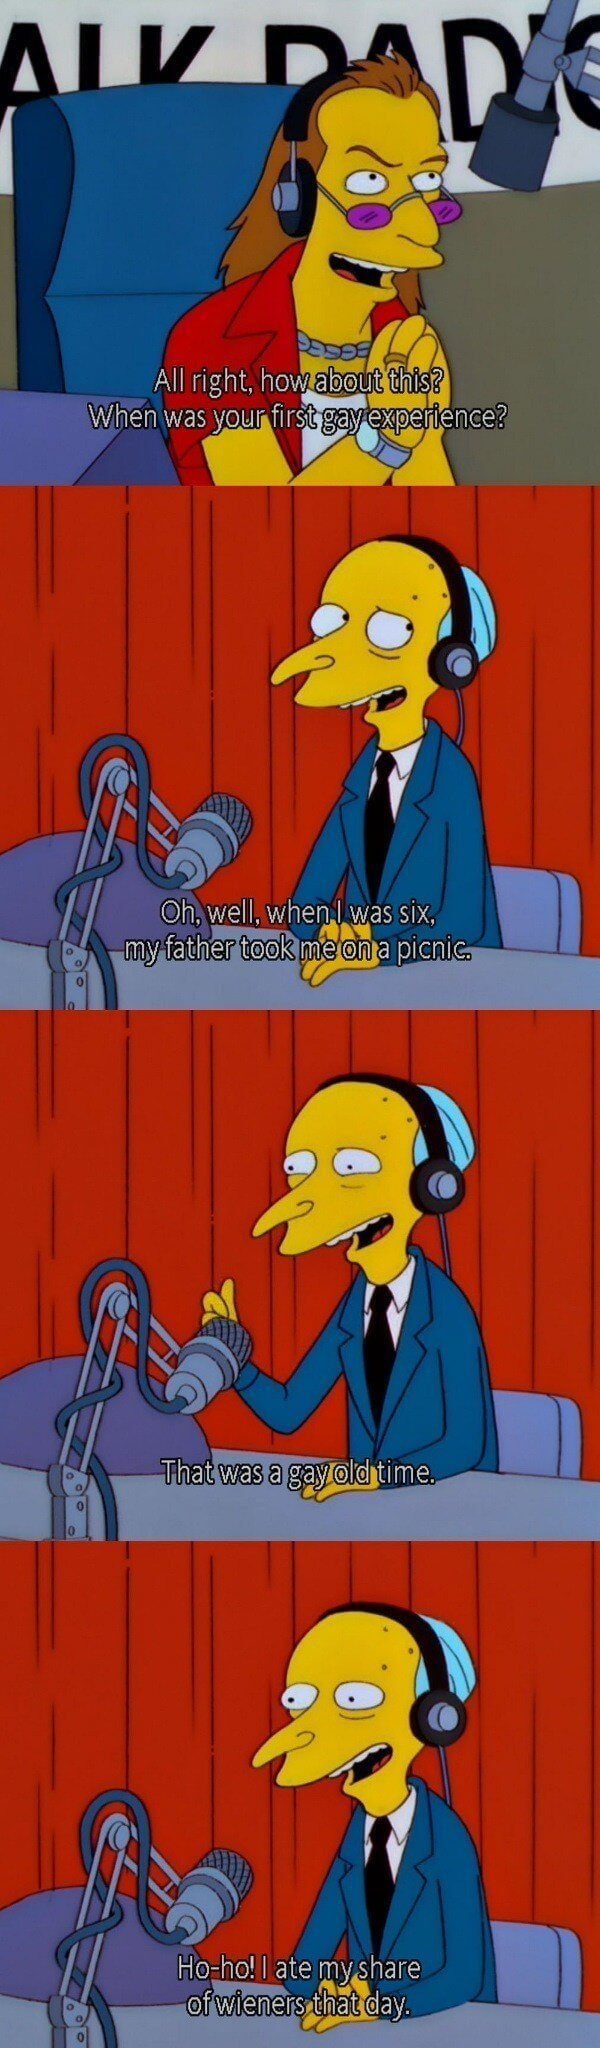 mr burns one liners 11 (1)